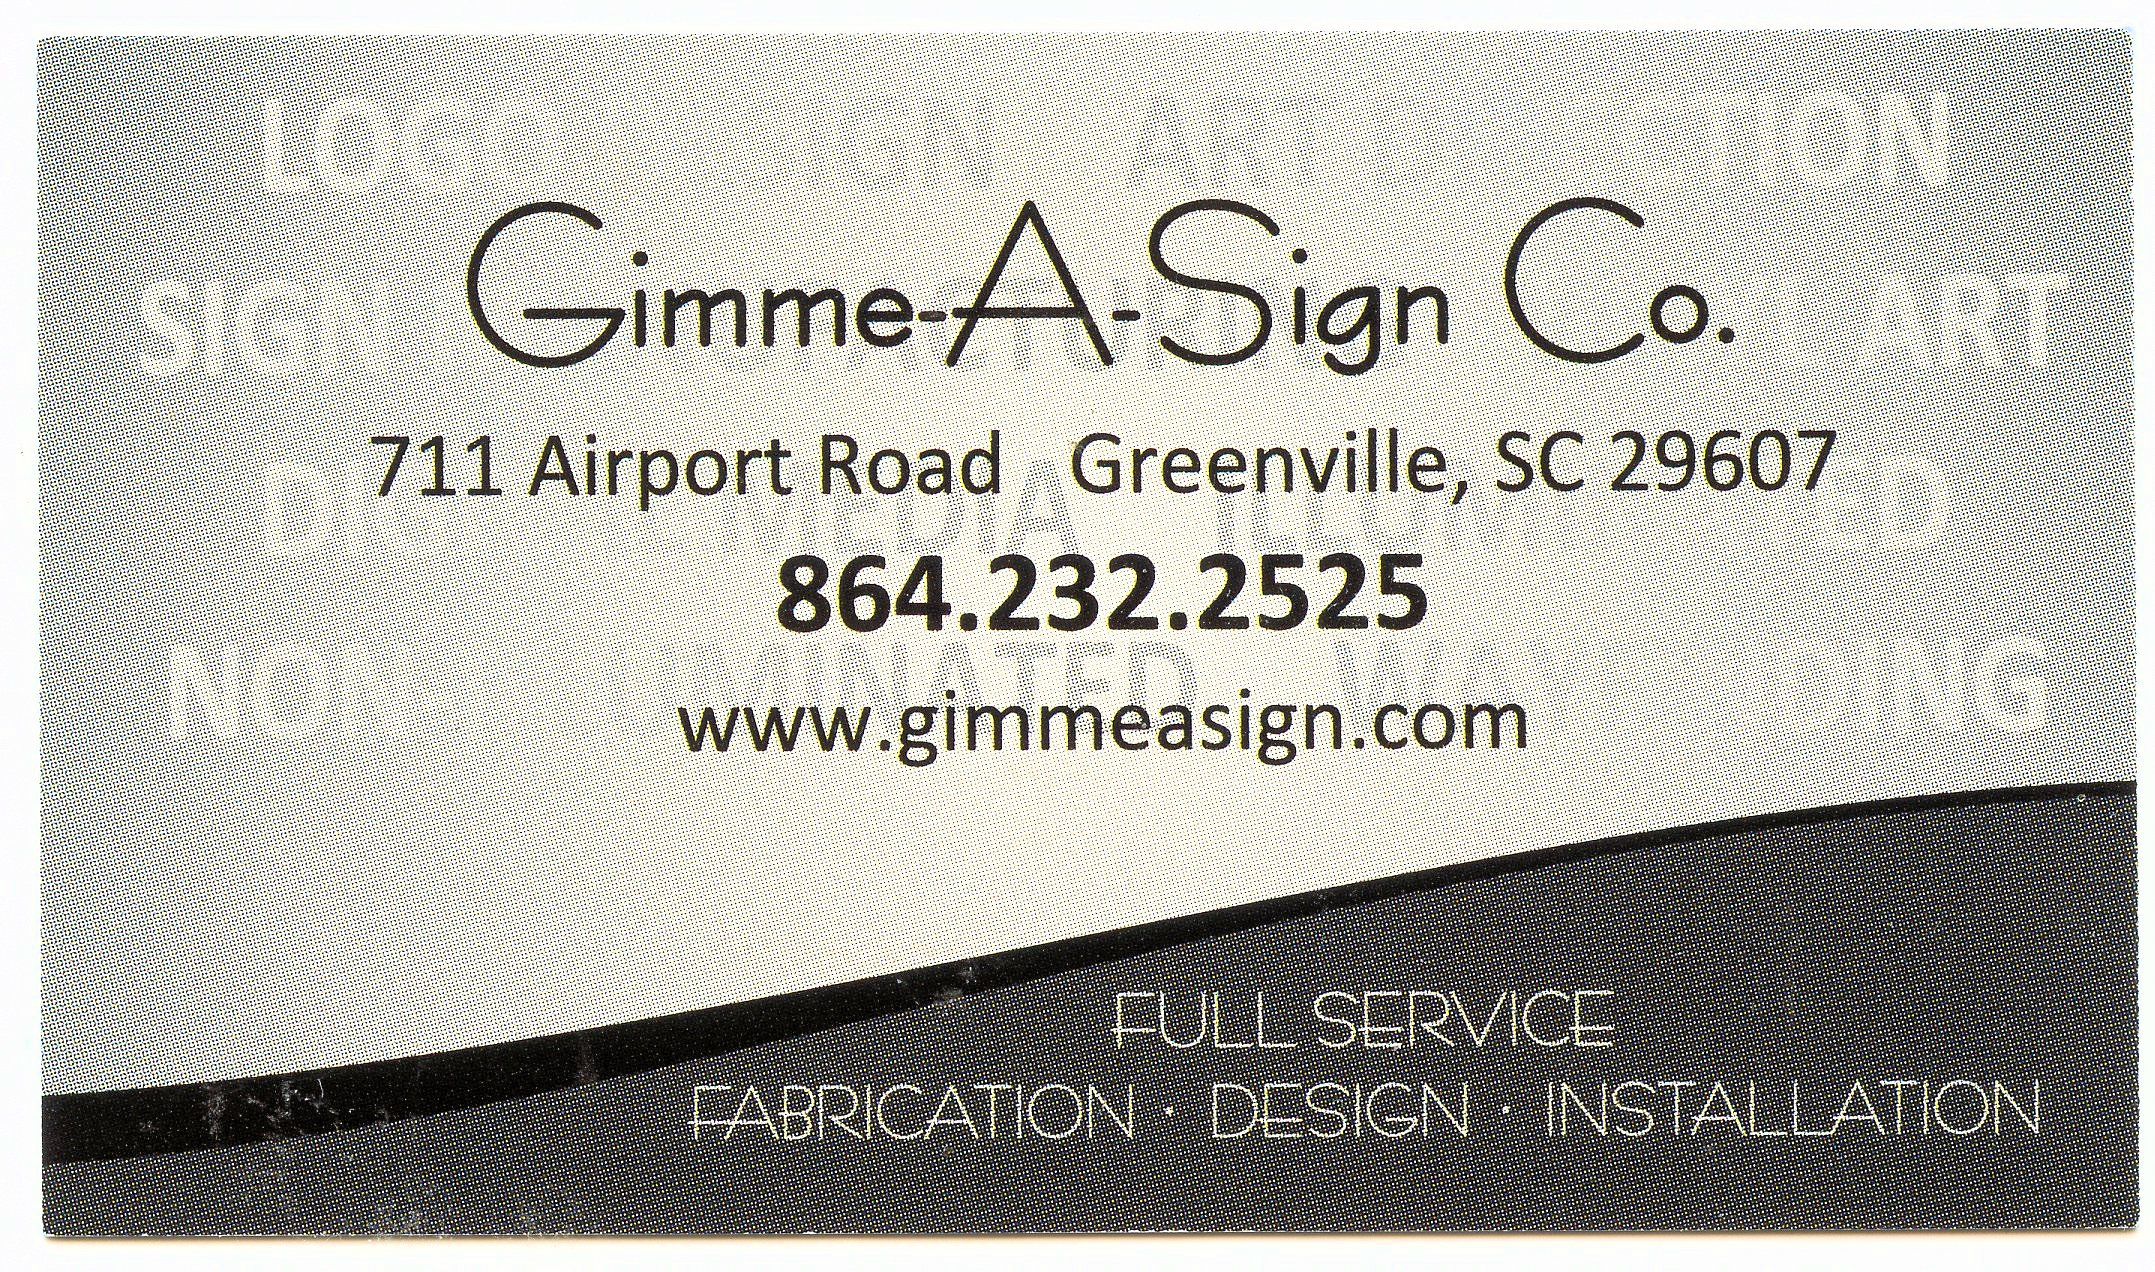 Gimme-A Sign Co.